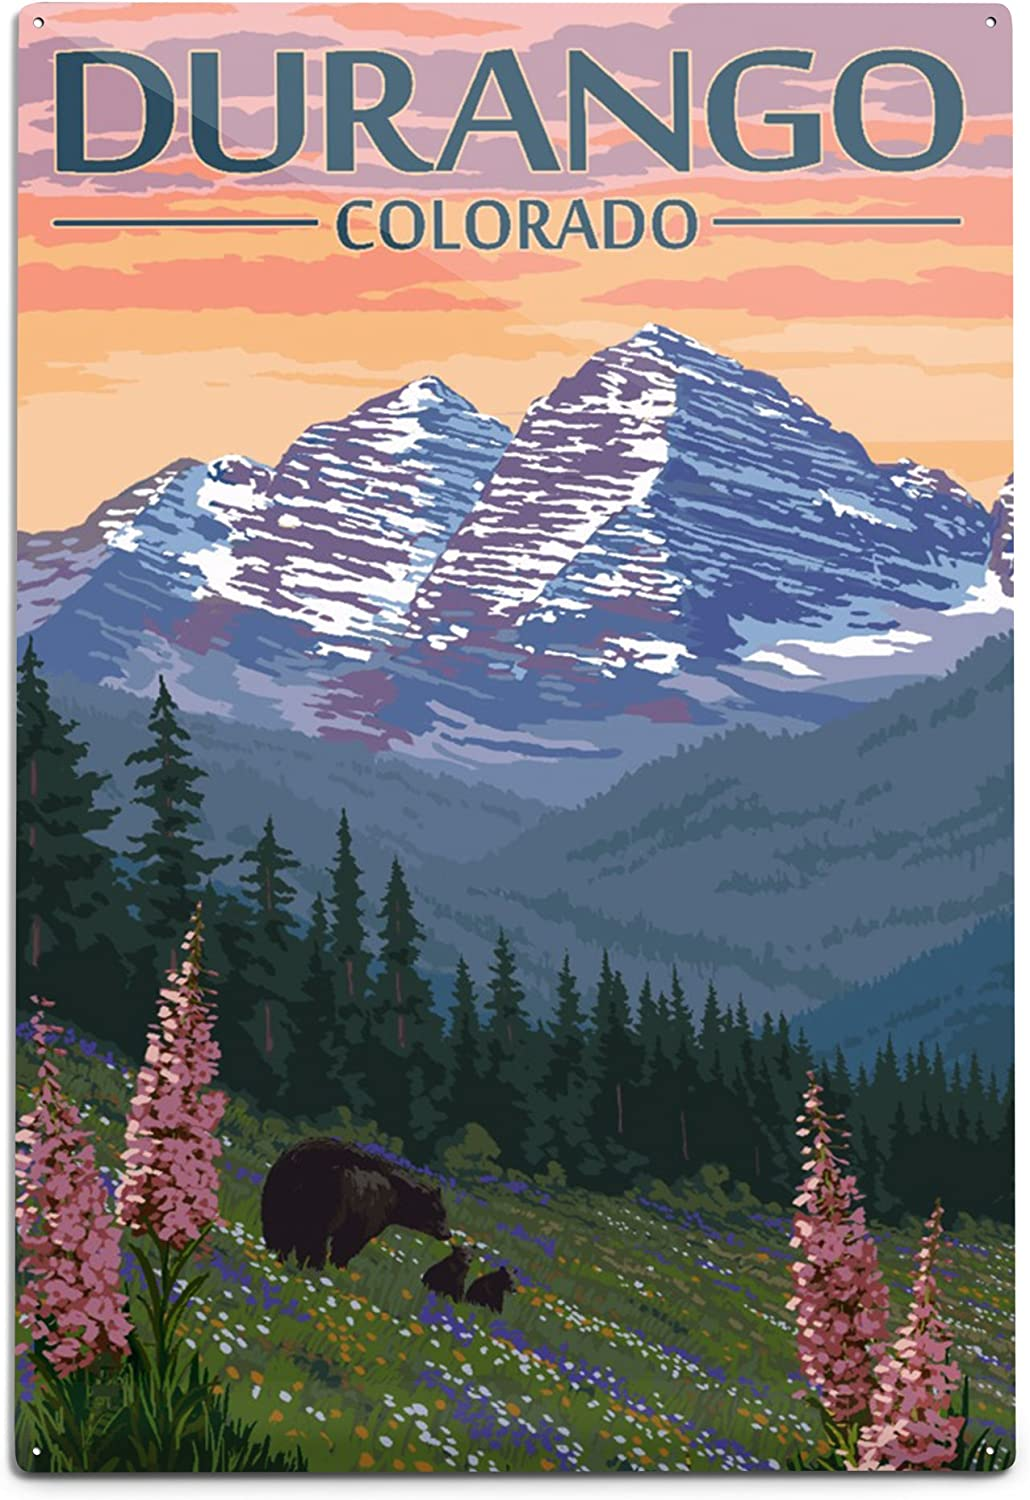 Lantern Some reservation Press Recommended Durango Colorado Bears and Flowers Spring 12x18